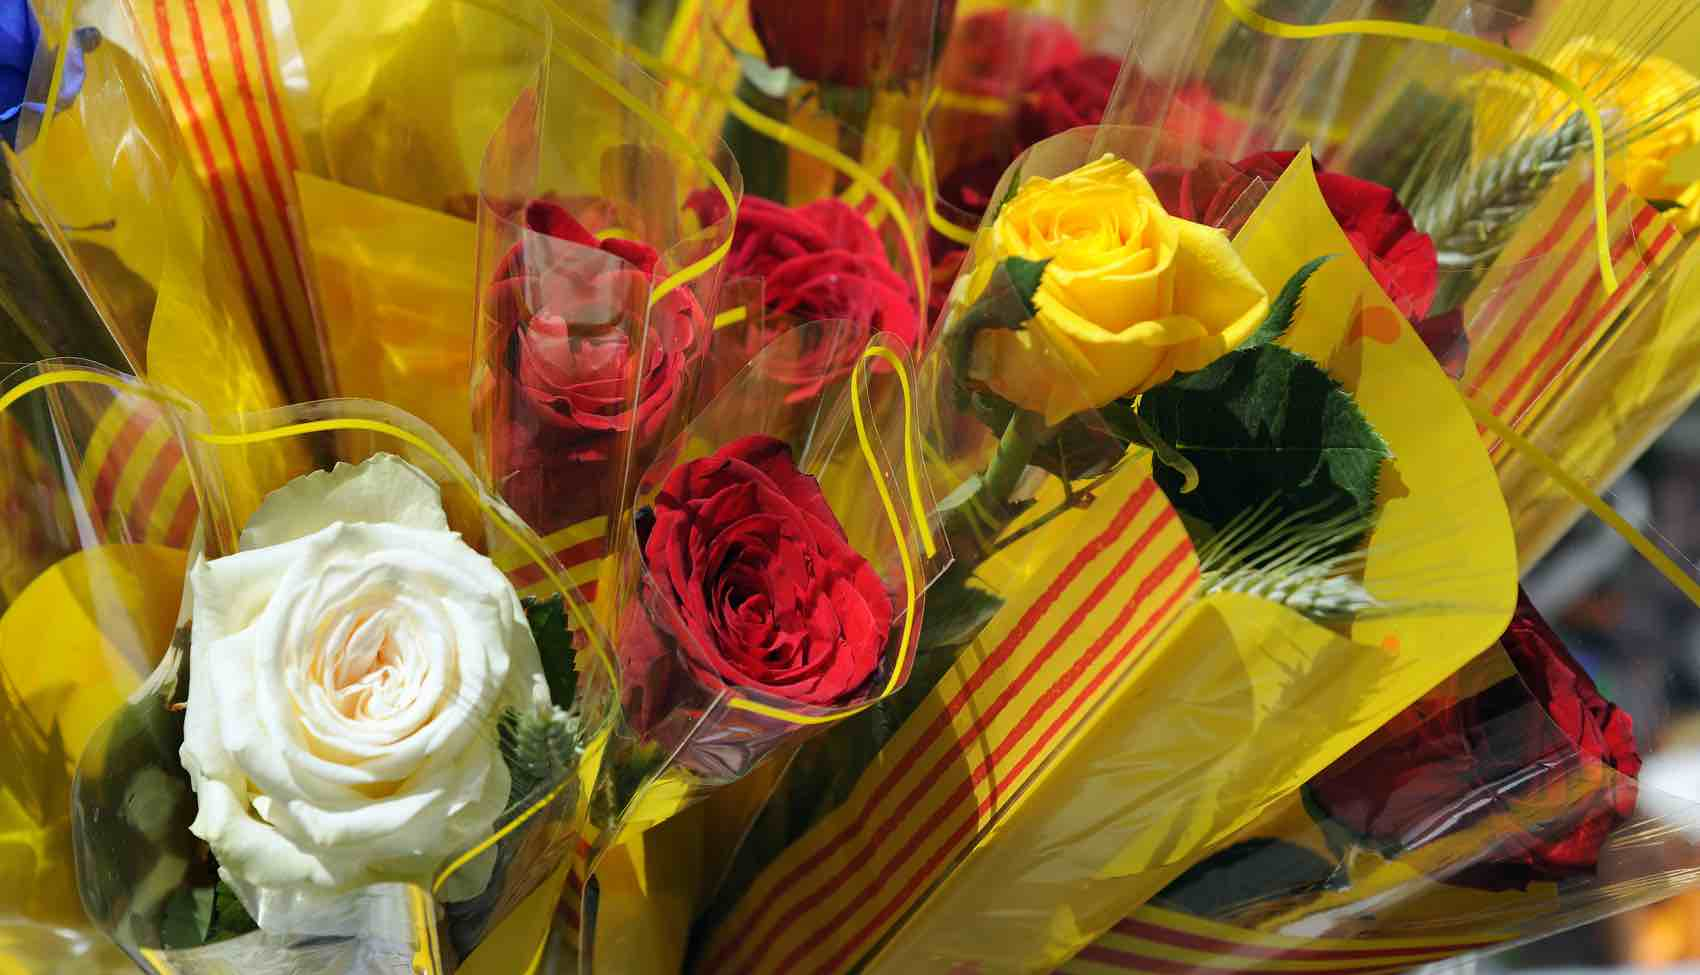 Be there on Sant Jordi Day: The day men give a deep-red rose to their beloved.